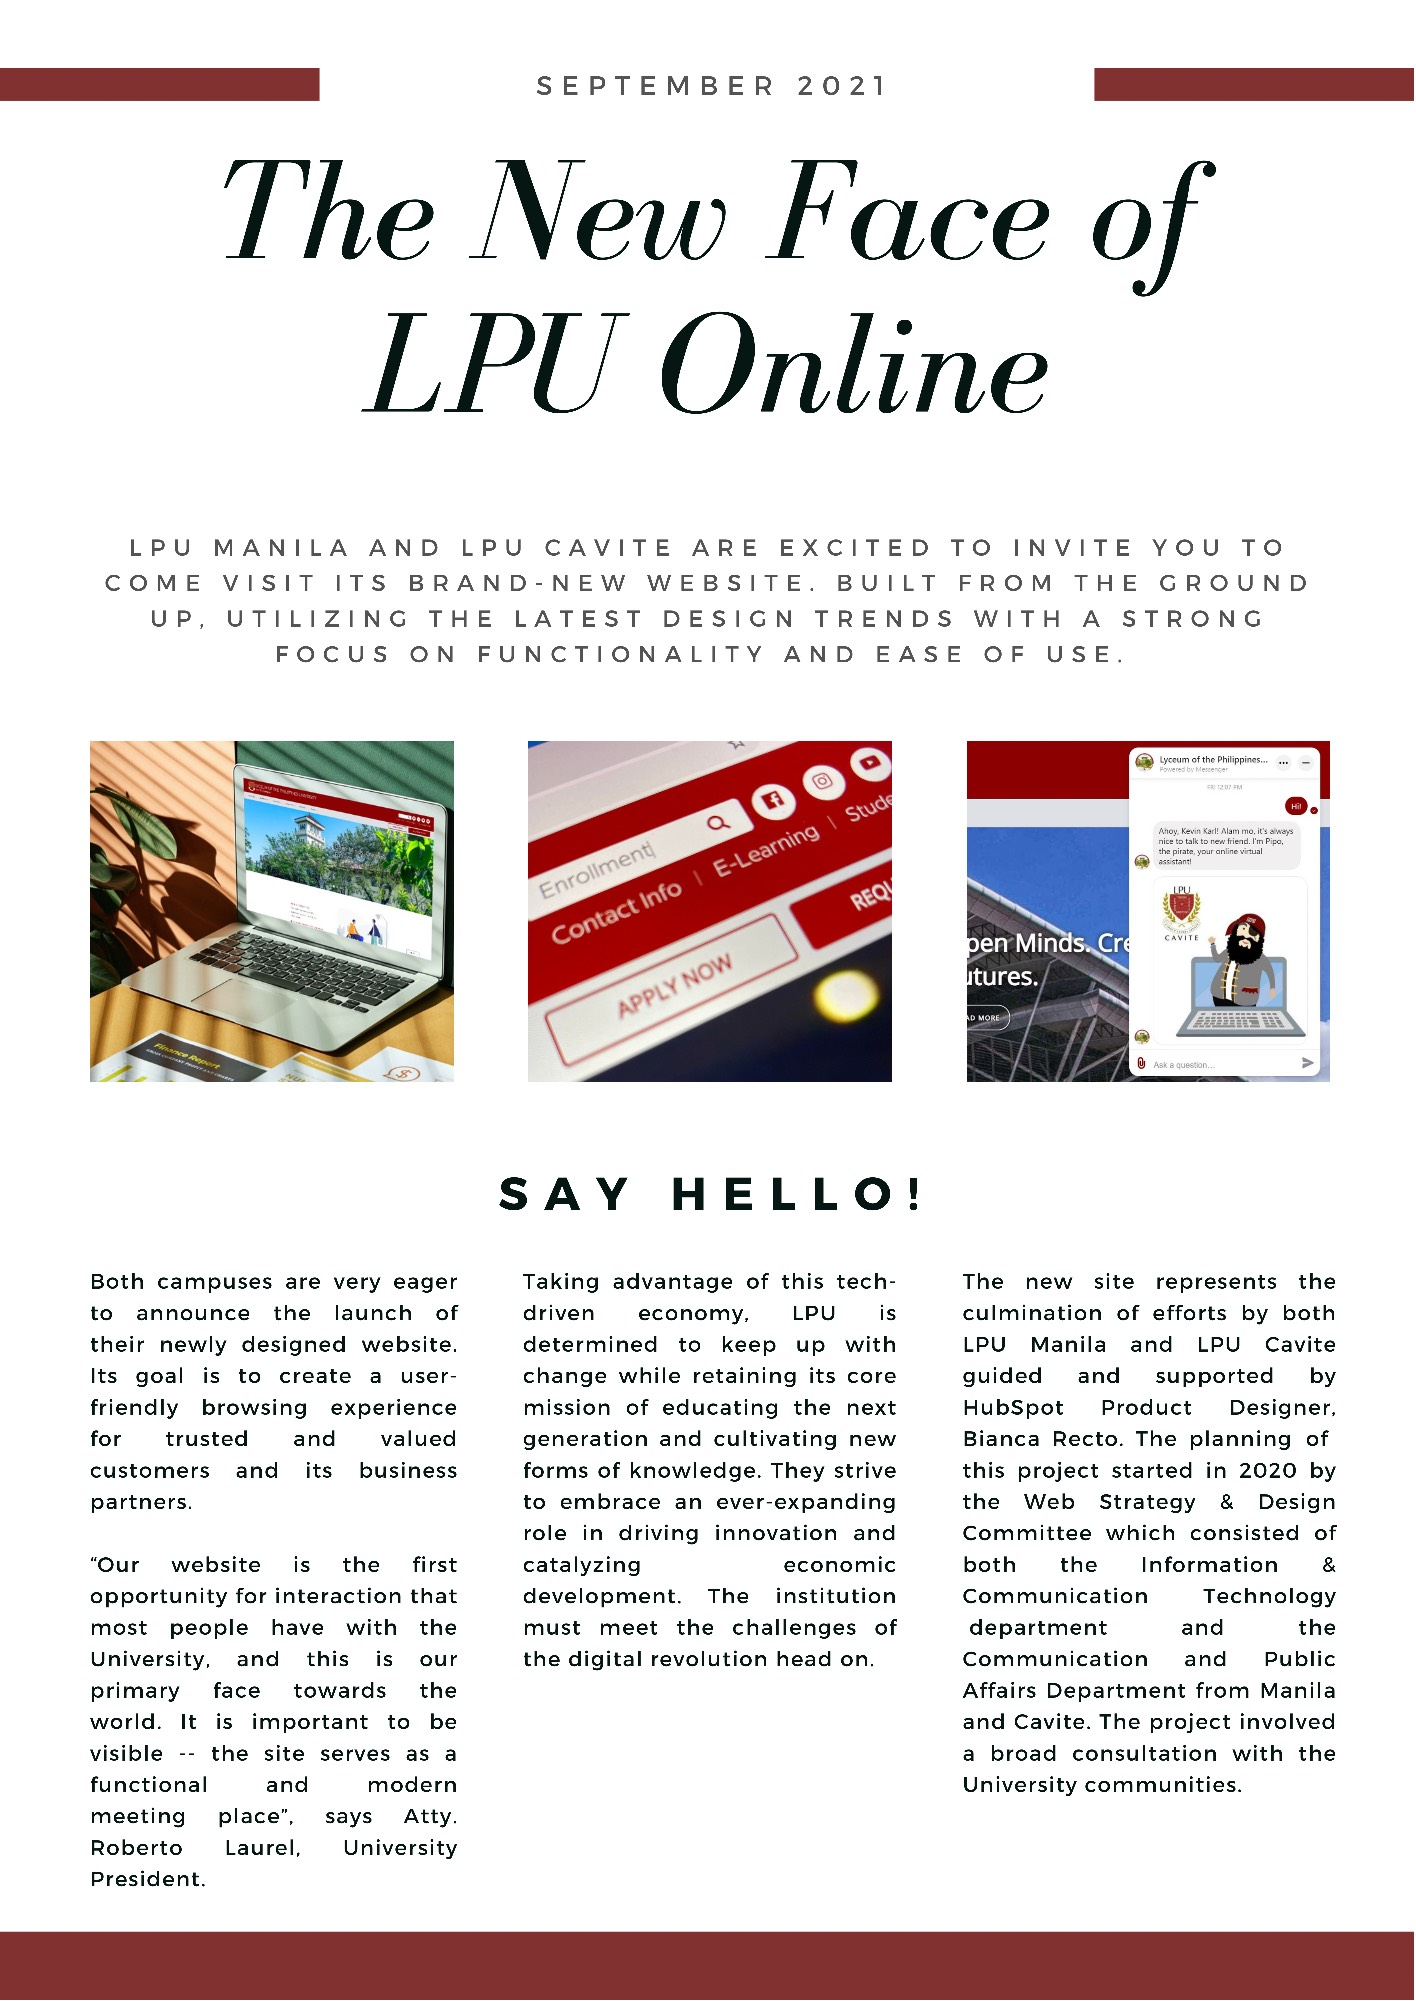 The New Face of LPU Online